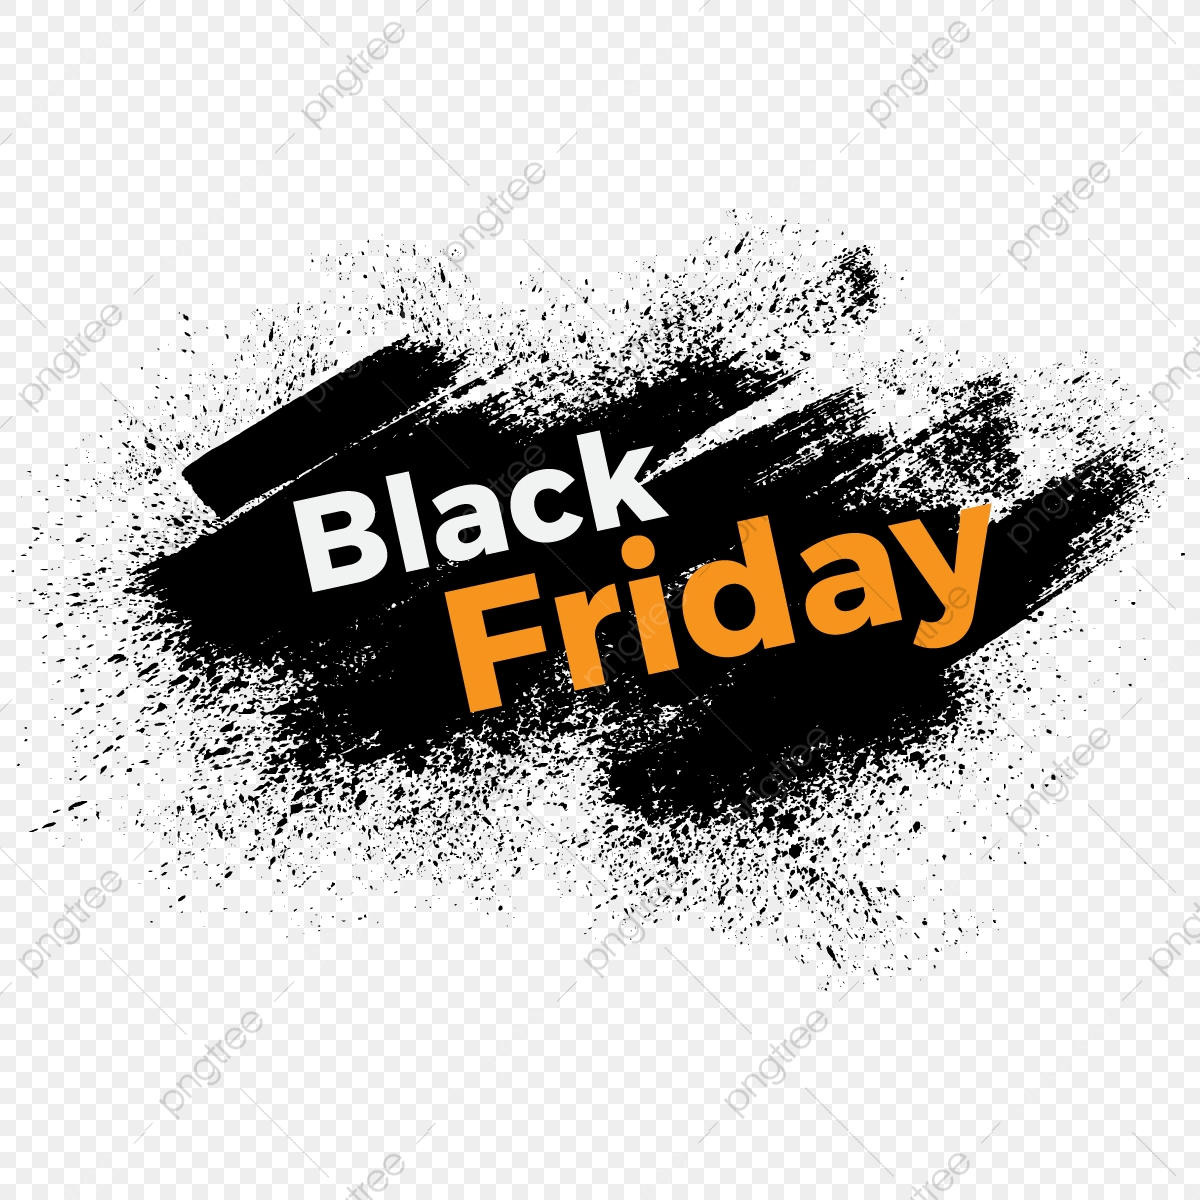 Modern Black Friday Vector With Grunge Style Modern Black Friday Png And Vector With Transparent Background For Free Download